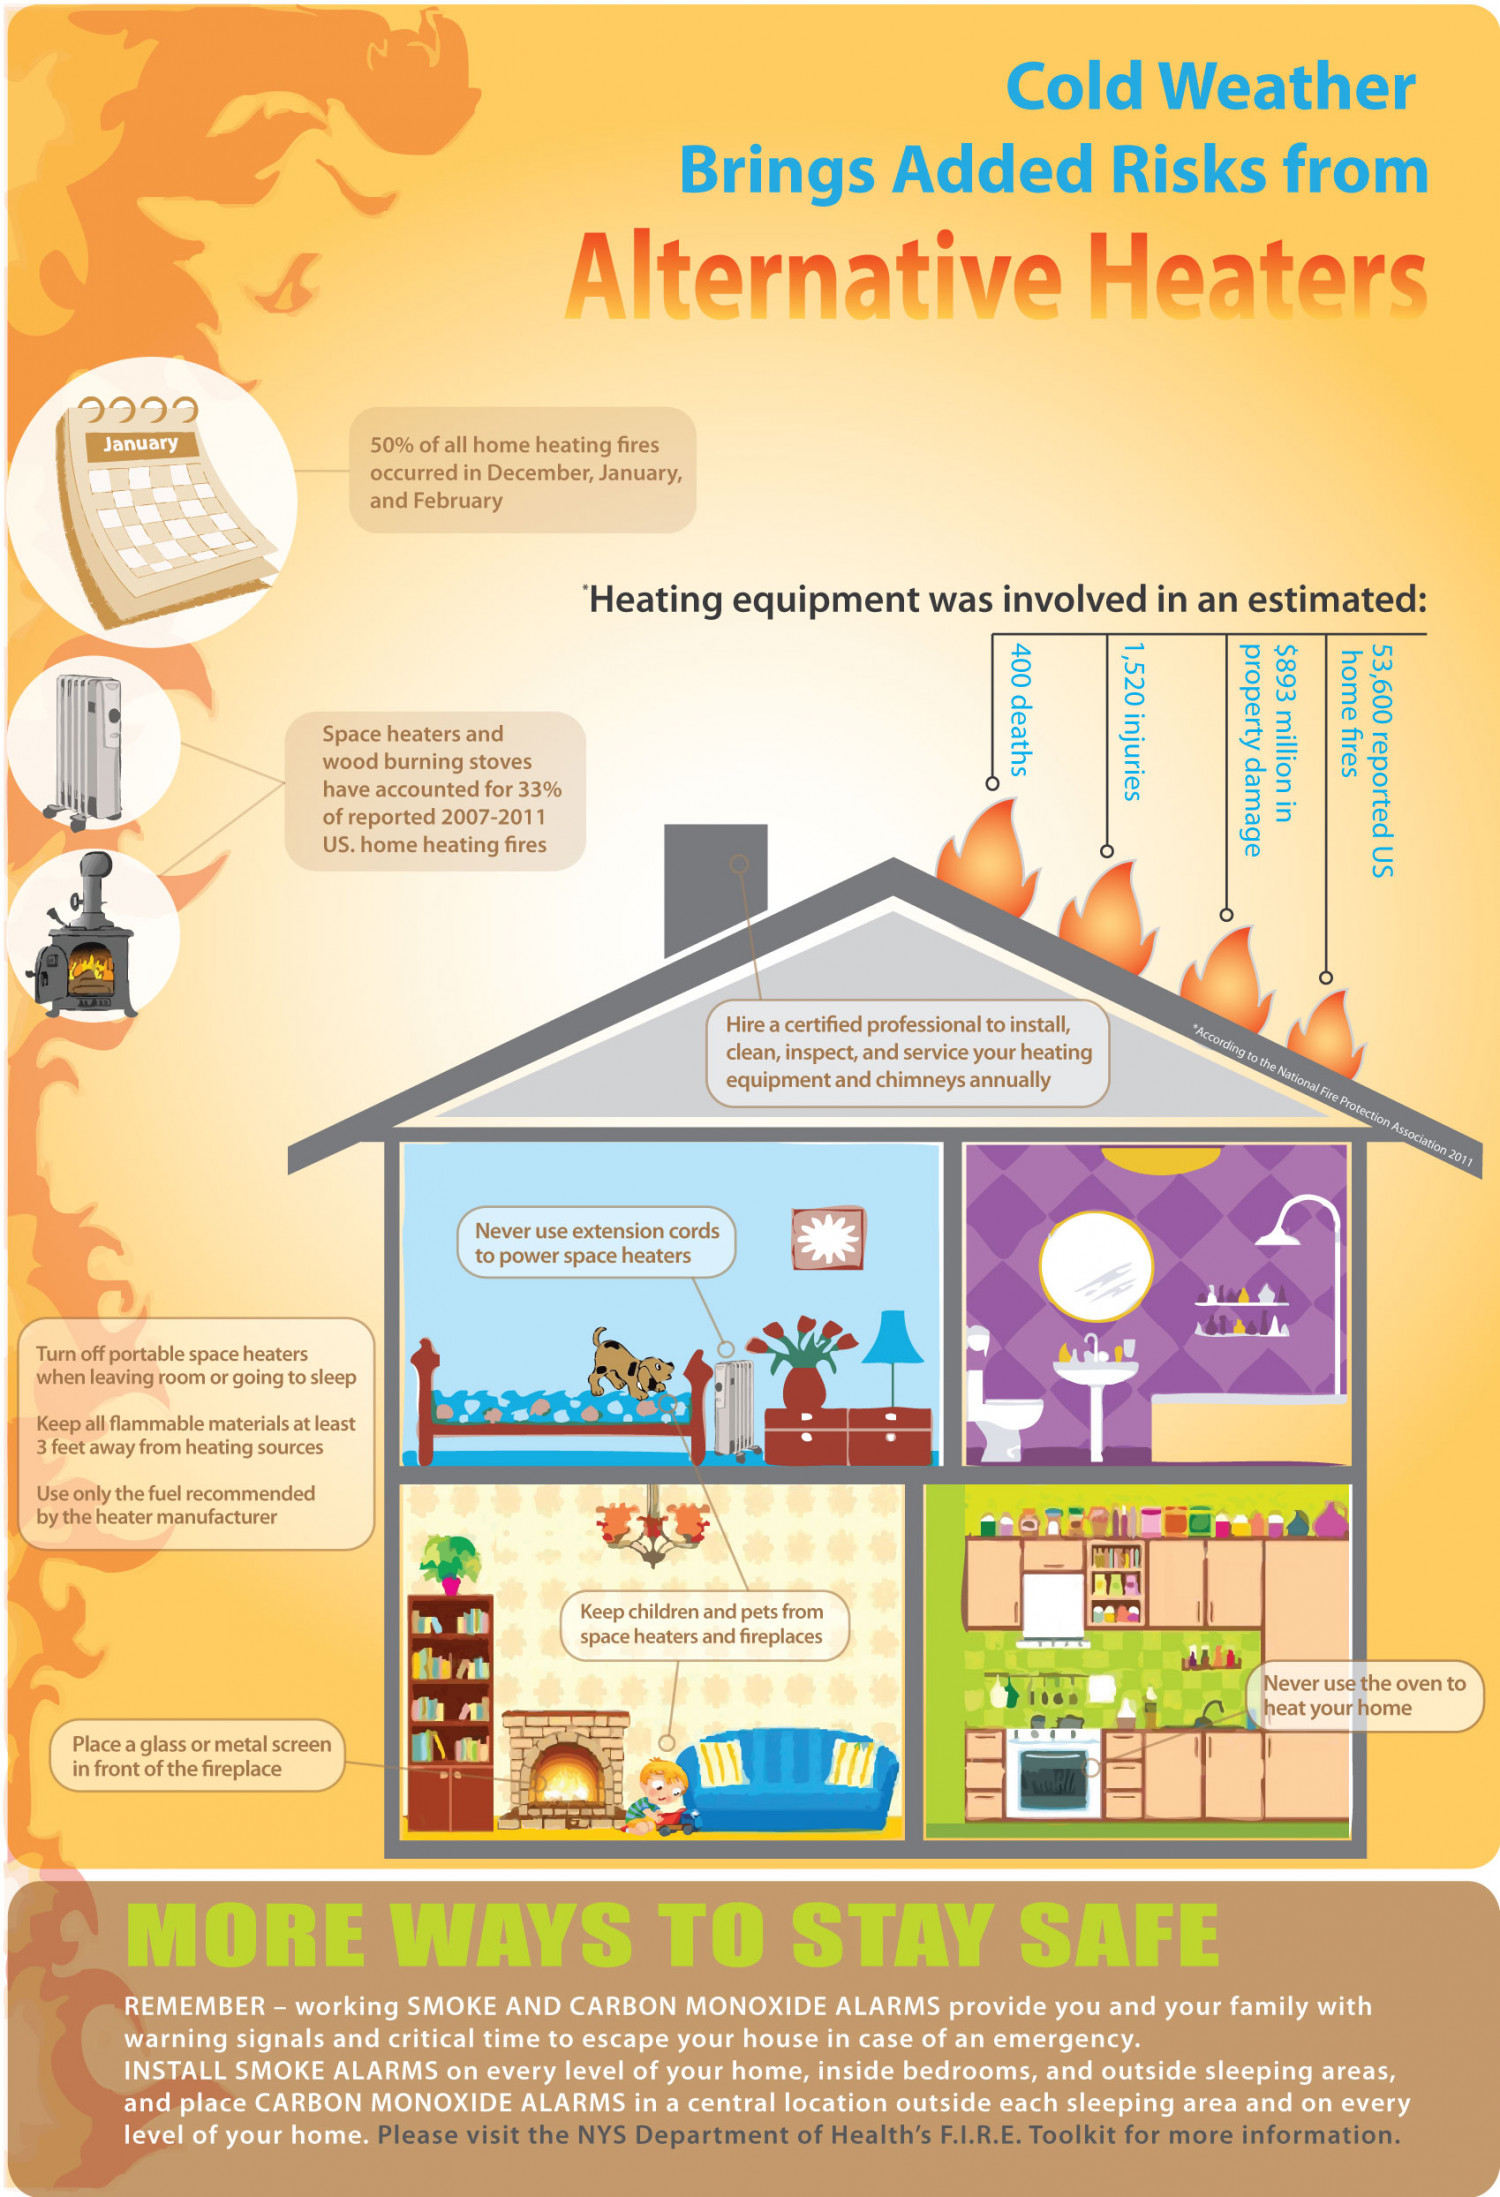 Stay Safe While Heating Your Home During Cold Winter